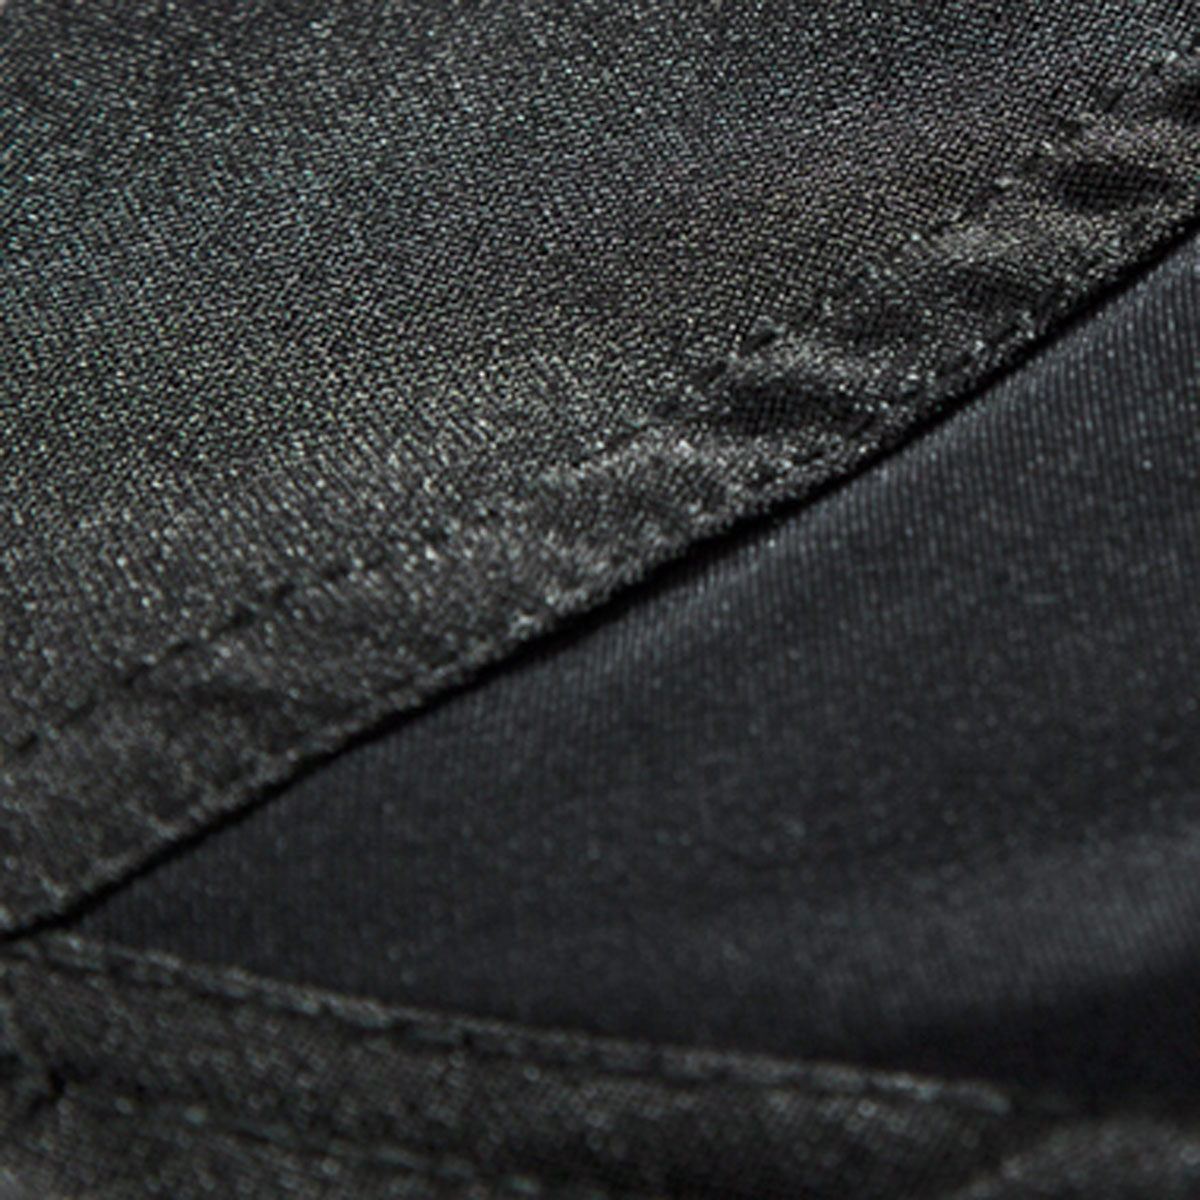 Spandex insert on Tech Rugby Shorts